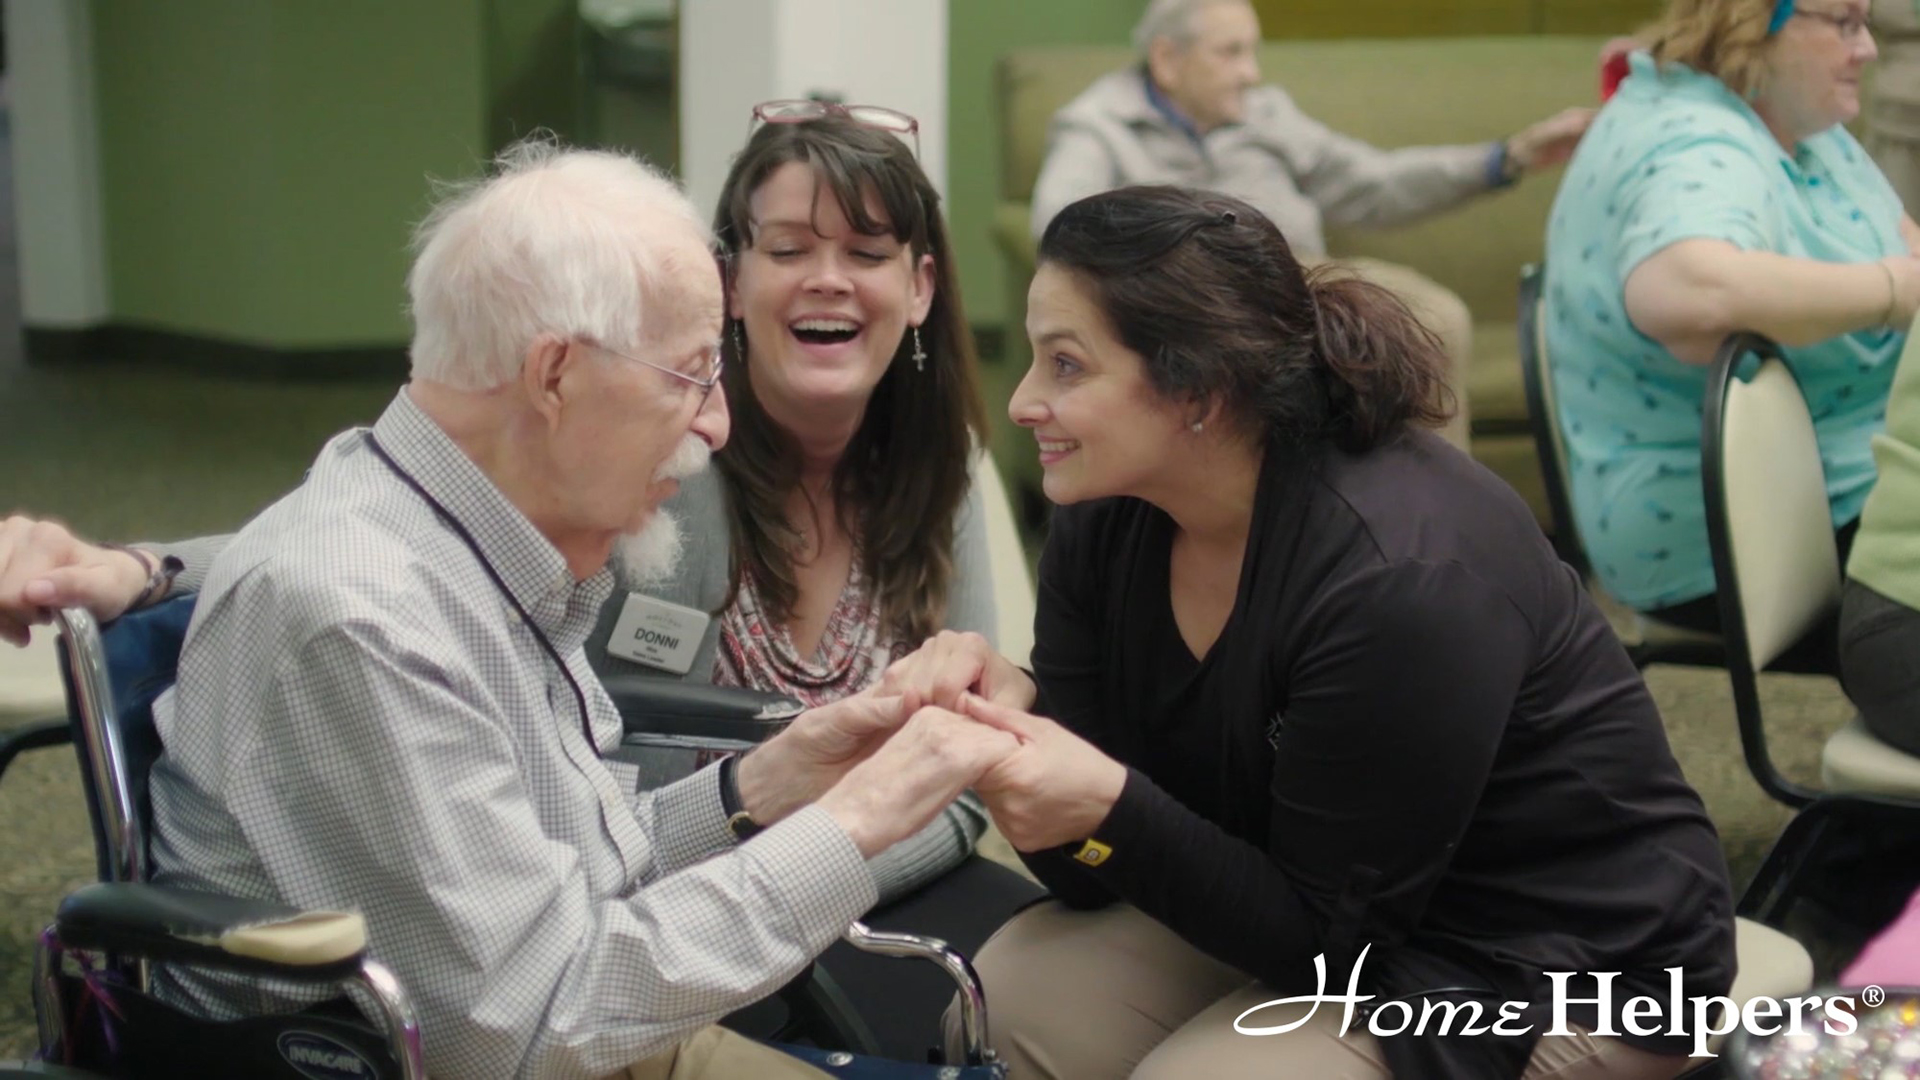 Home Helpers Home Care Franchise Opportunities